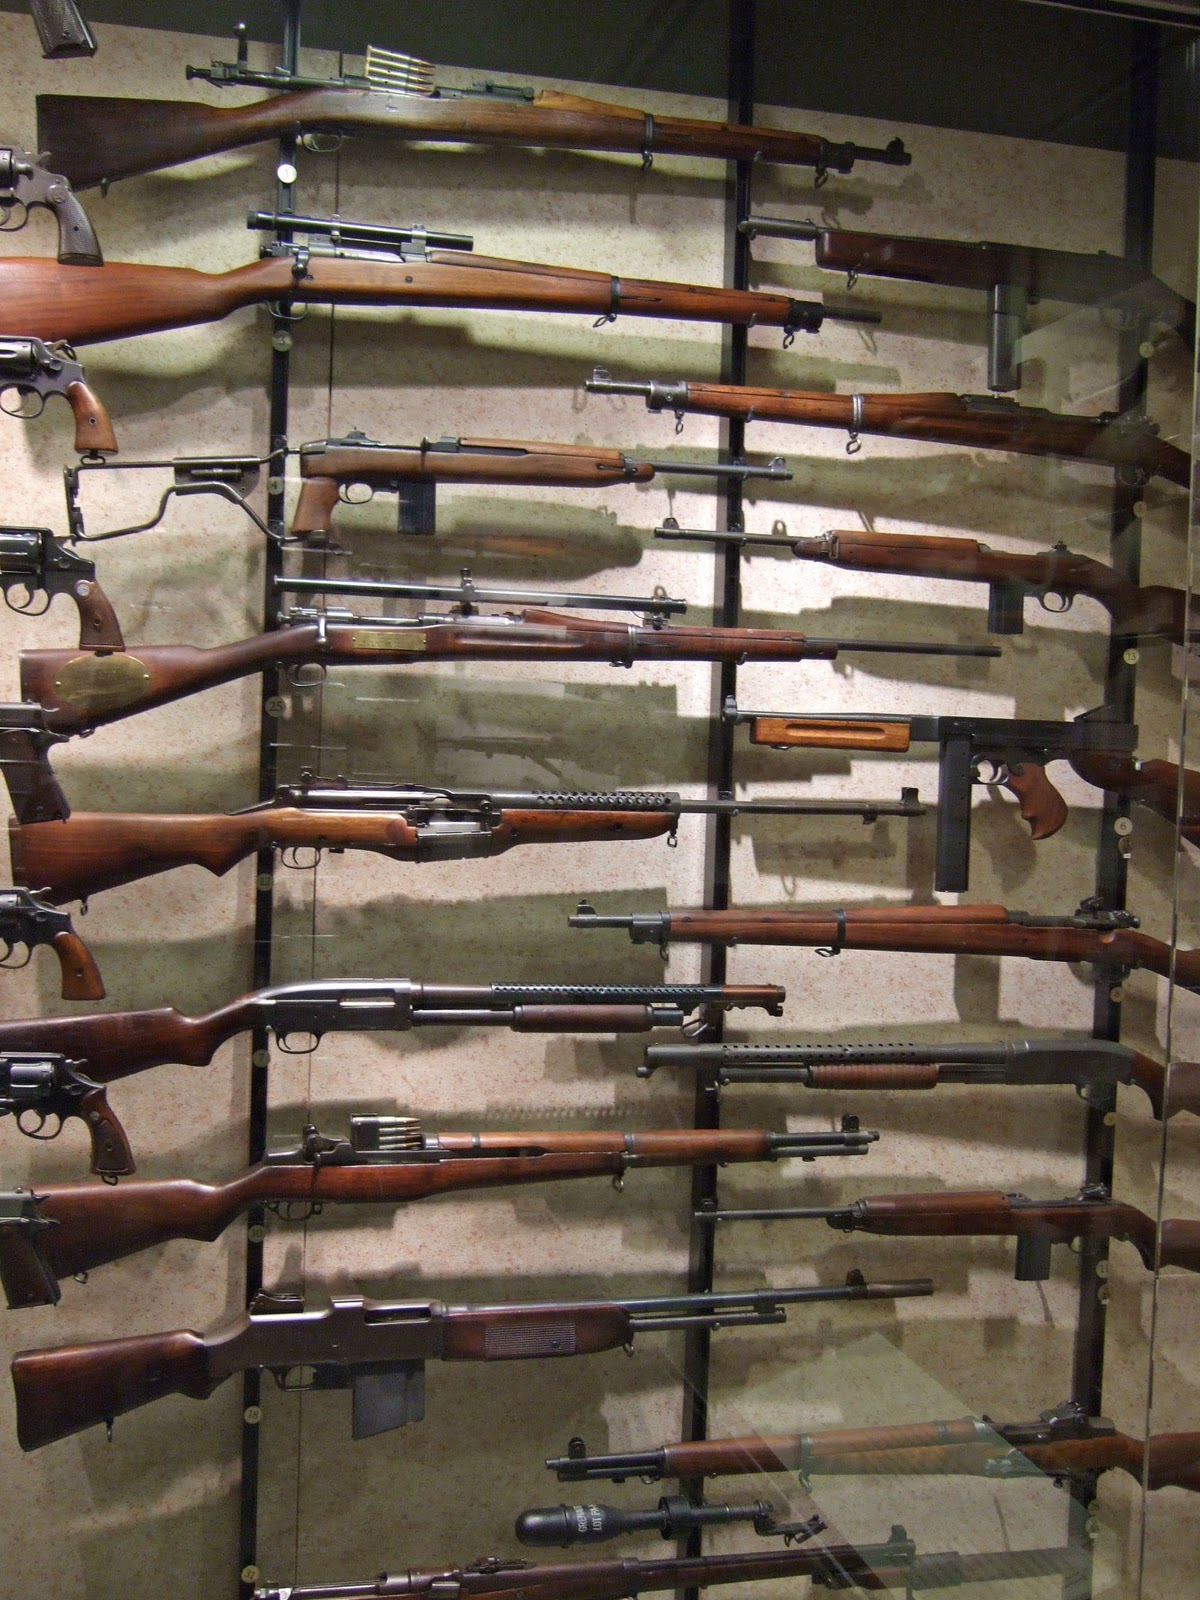 guns in the us Conservative estimates of the number of firearms in the united states suggest that there exist 83 privately-owned firearms for every 100 people in the country.